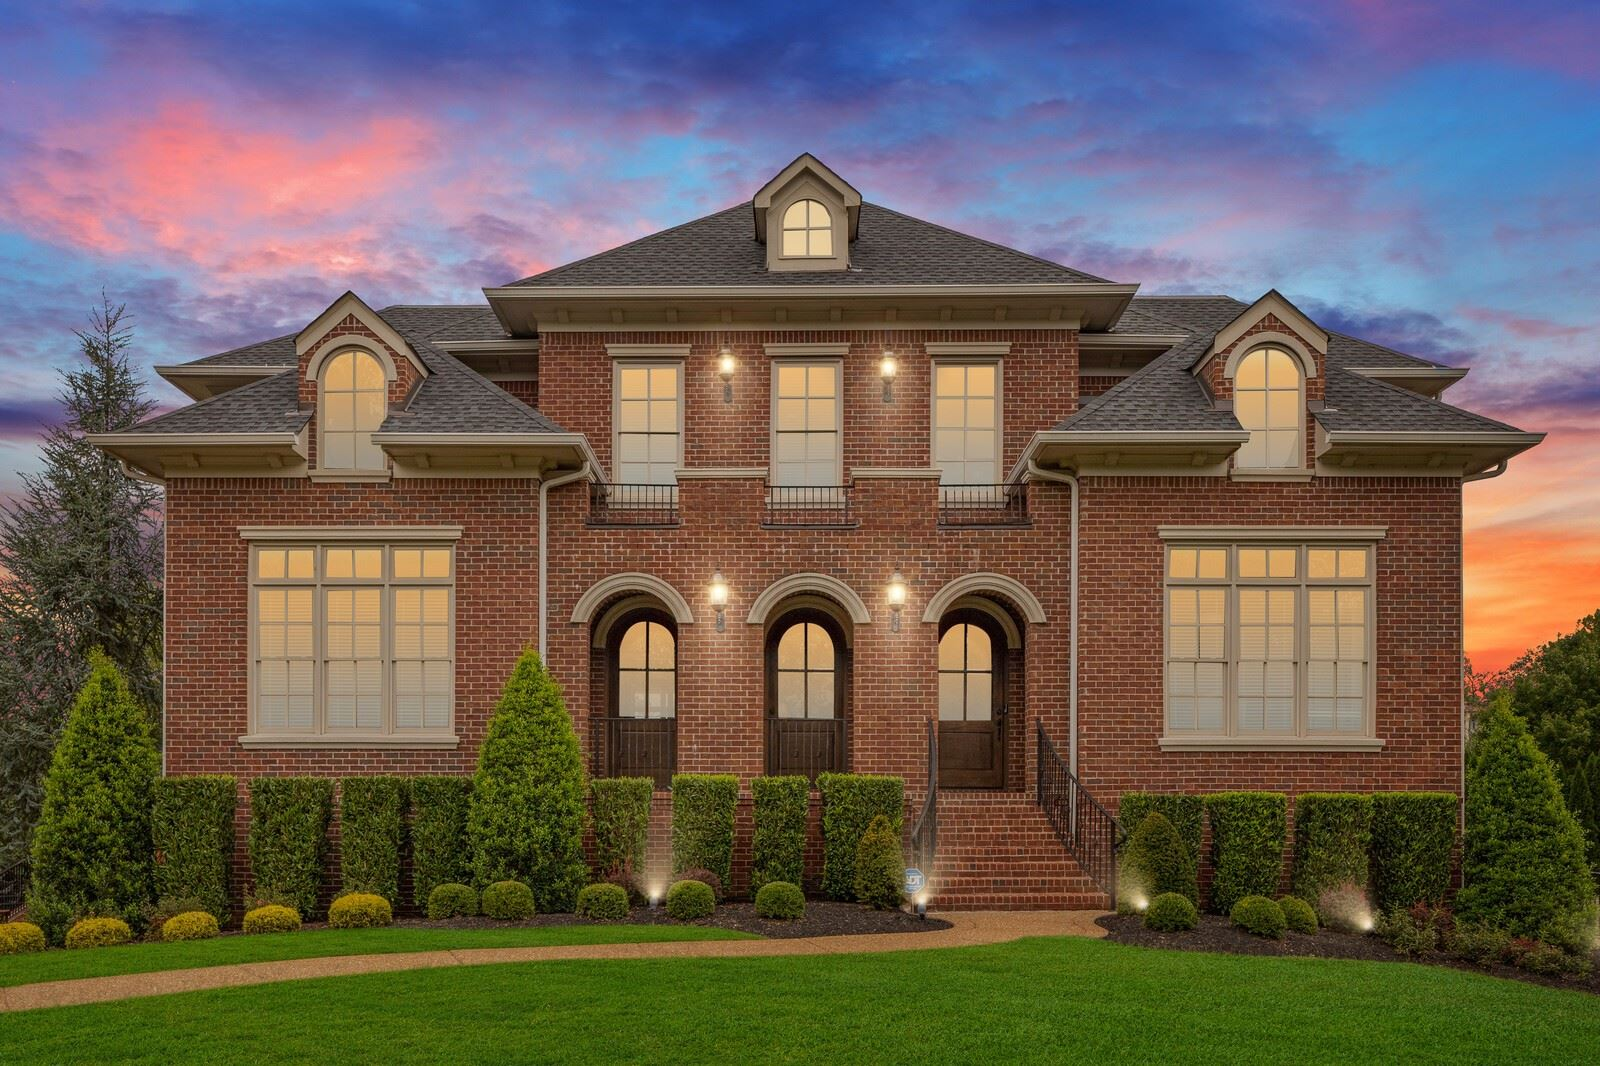 Photo of 18 Tradition Ln, Brentwood, TN 37027 (MLS # 2184263)